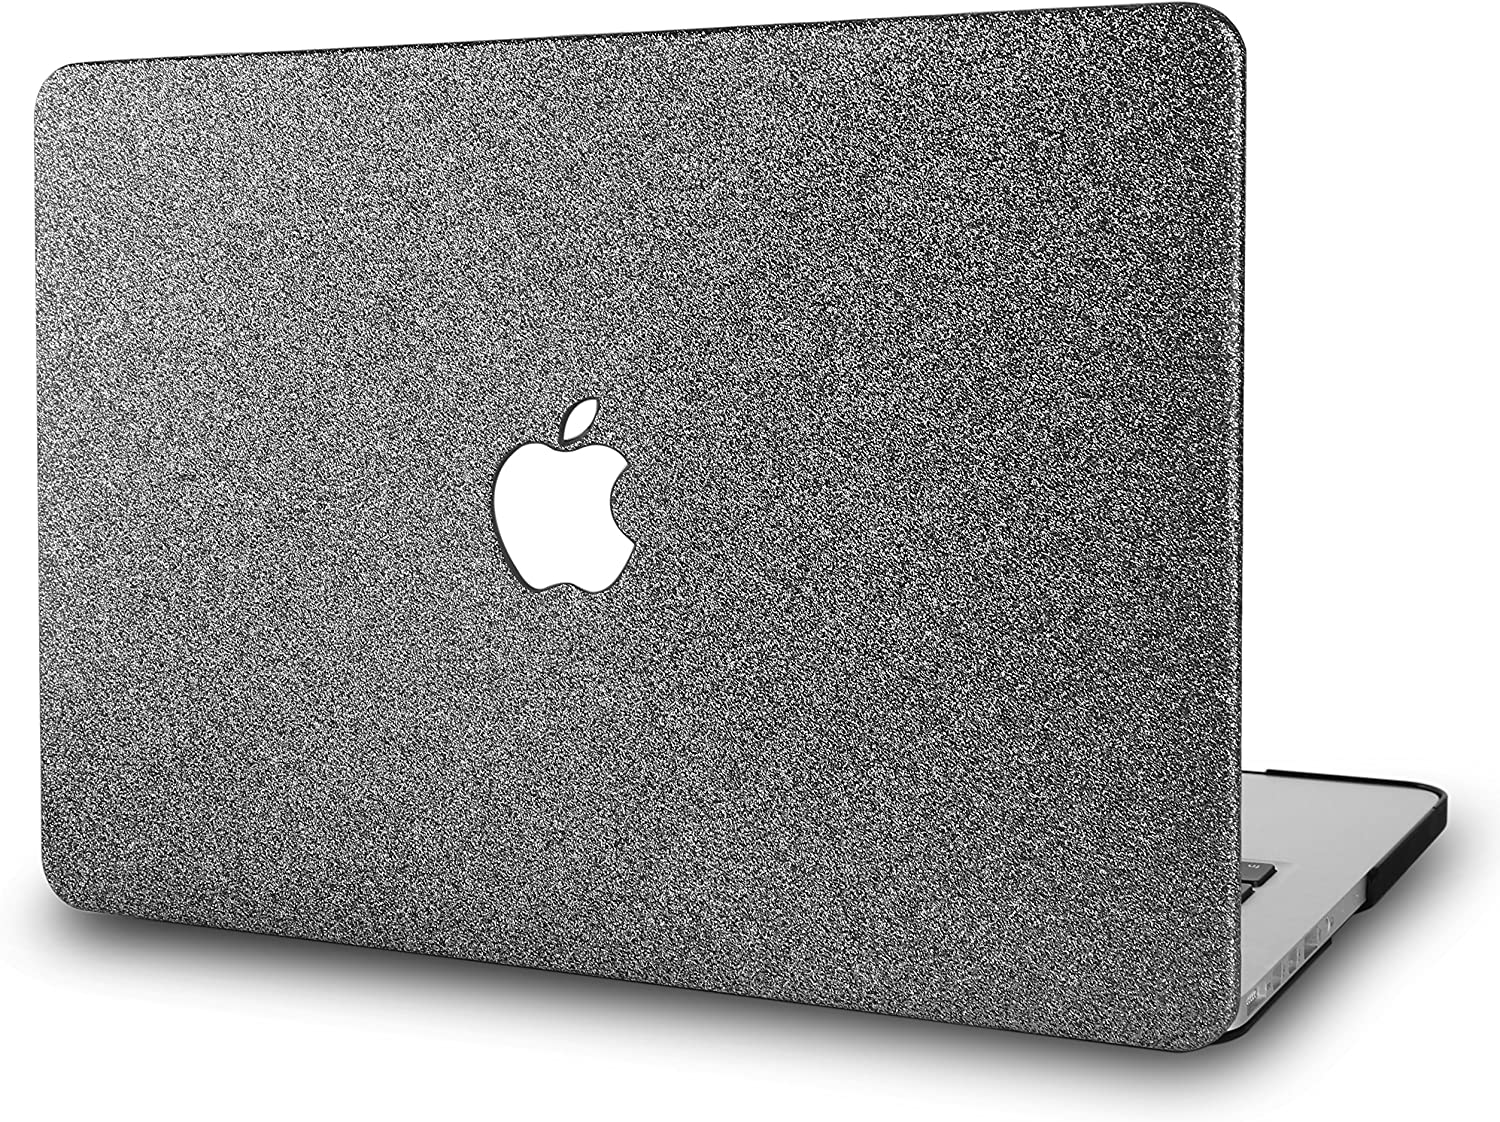 "KECC Laptop Case for MacBook Pro 13"" (2020/2019/2018/2017/2016) Plastic Hard Shell Cover A2289/A2251/A2159/A1989/A1706/A1708 Touch Bar (Grey Sparkling)"